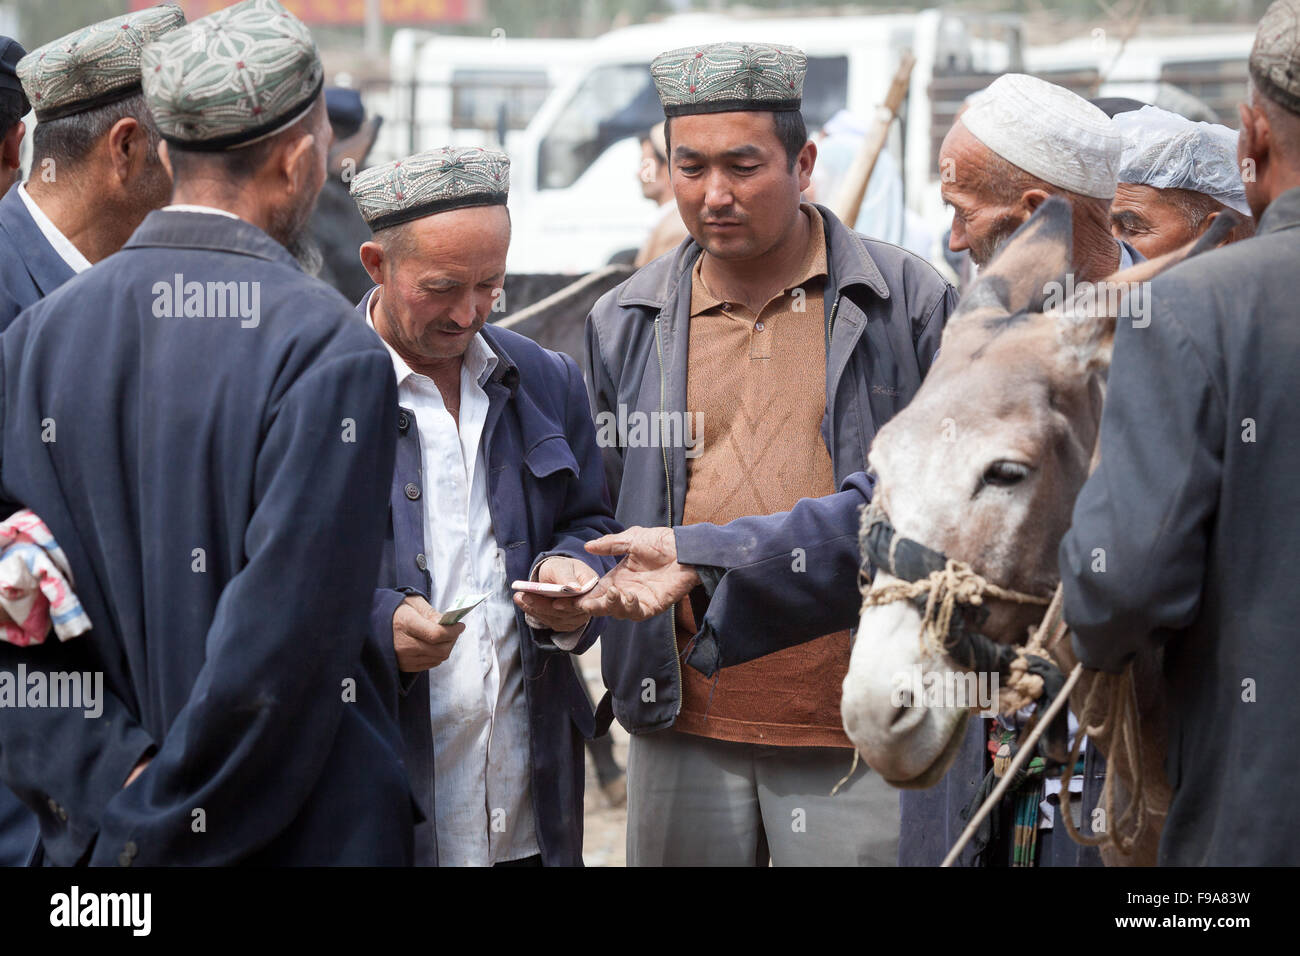 Tenders on the famous animal market in Kashgar. Xinjiang, China. - Stock Image